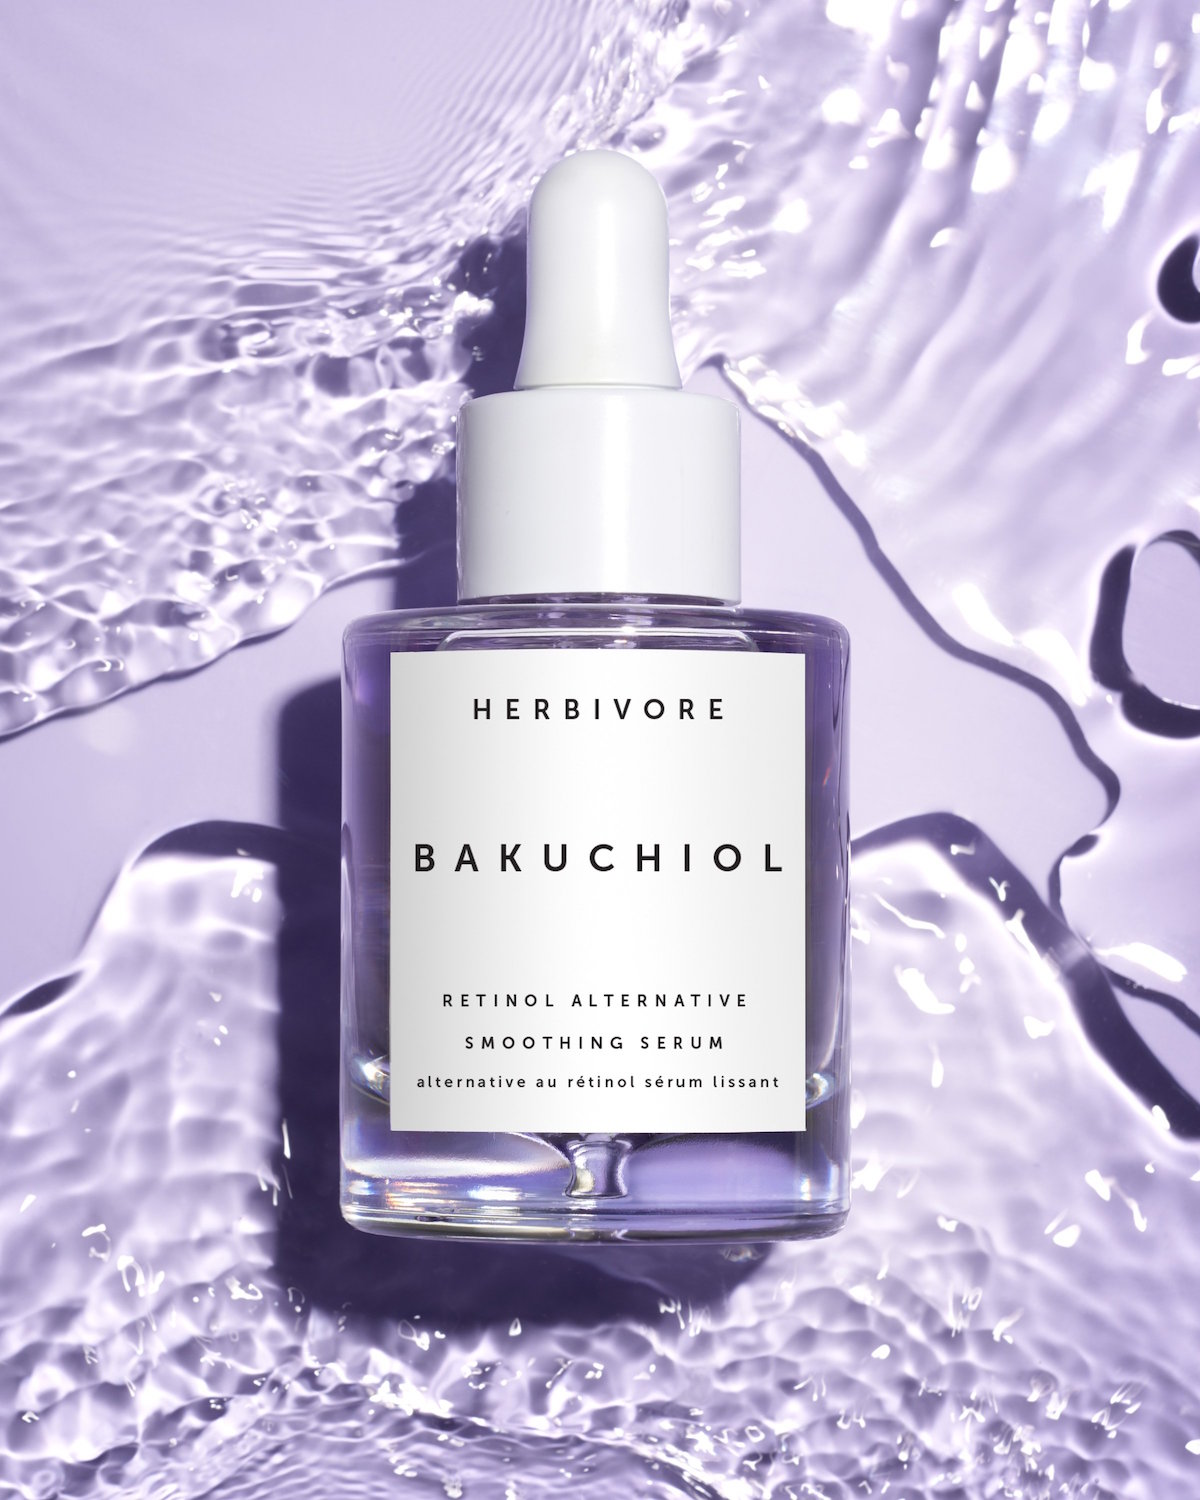 Herbivore_Bakuchiol_Retinol_Alternative_Smoothing_Serum